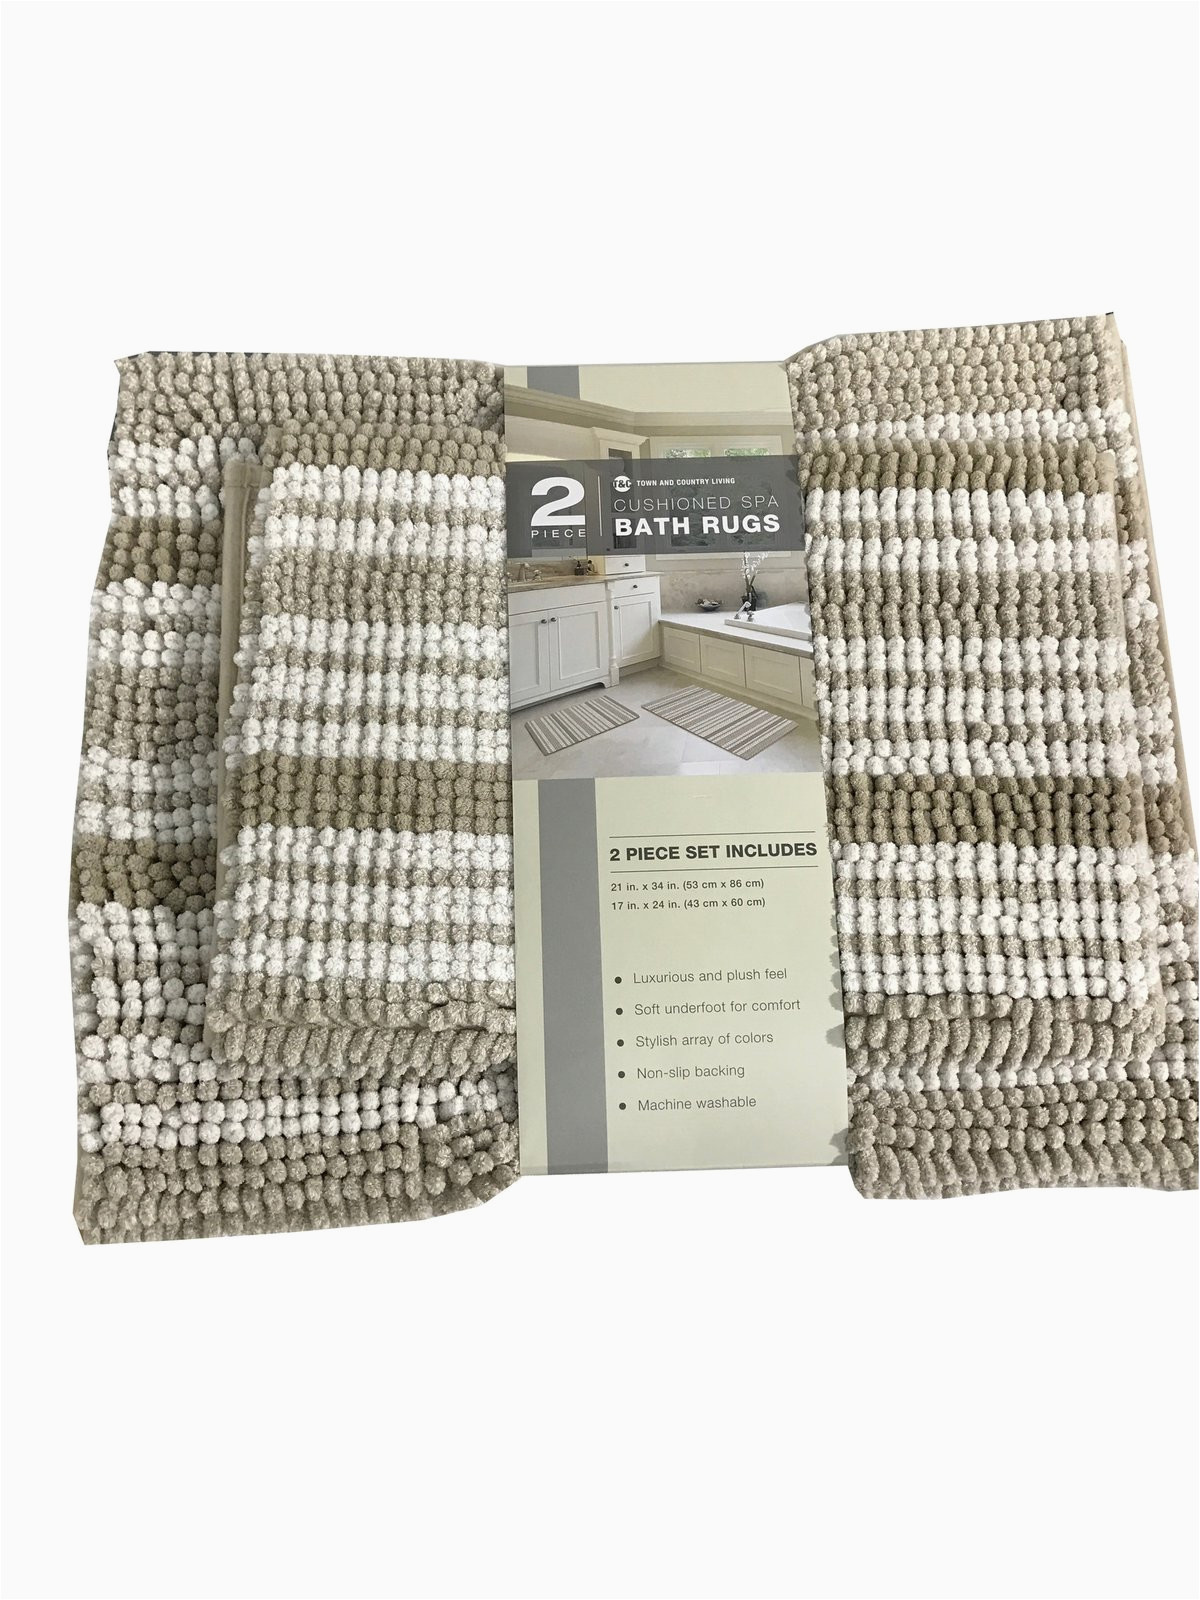 town country living 2 piece cushioned spa bath rugs set 21 34 and 17 24 in brown